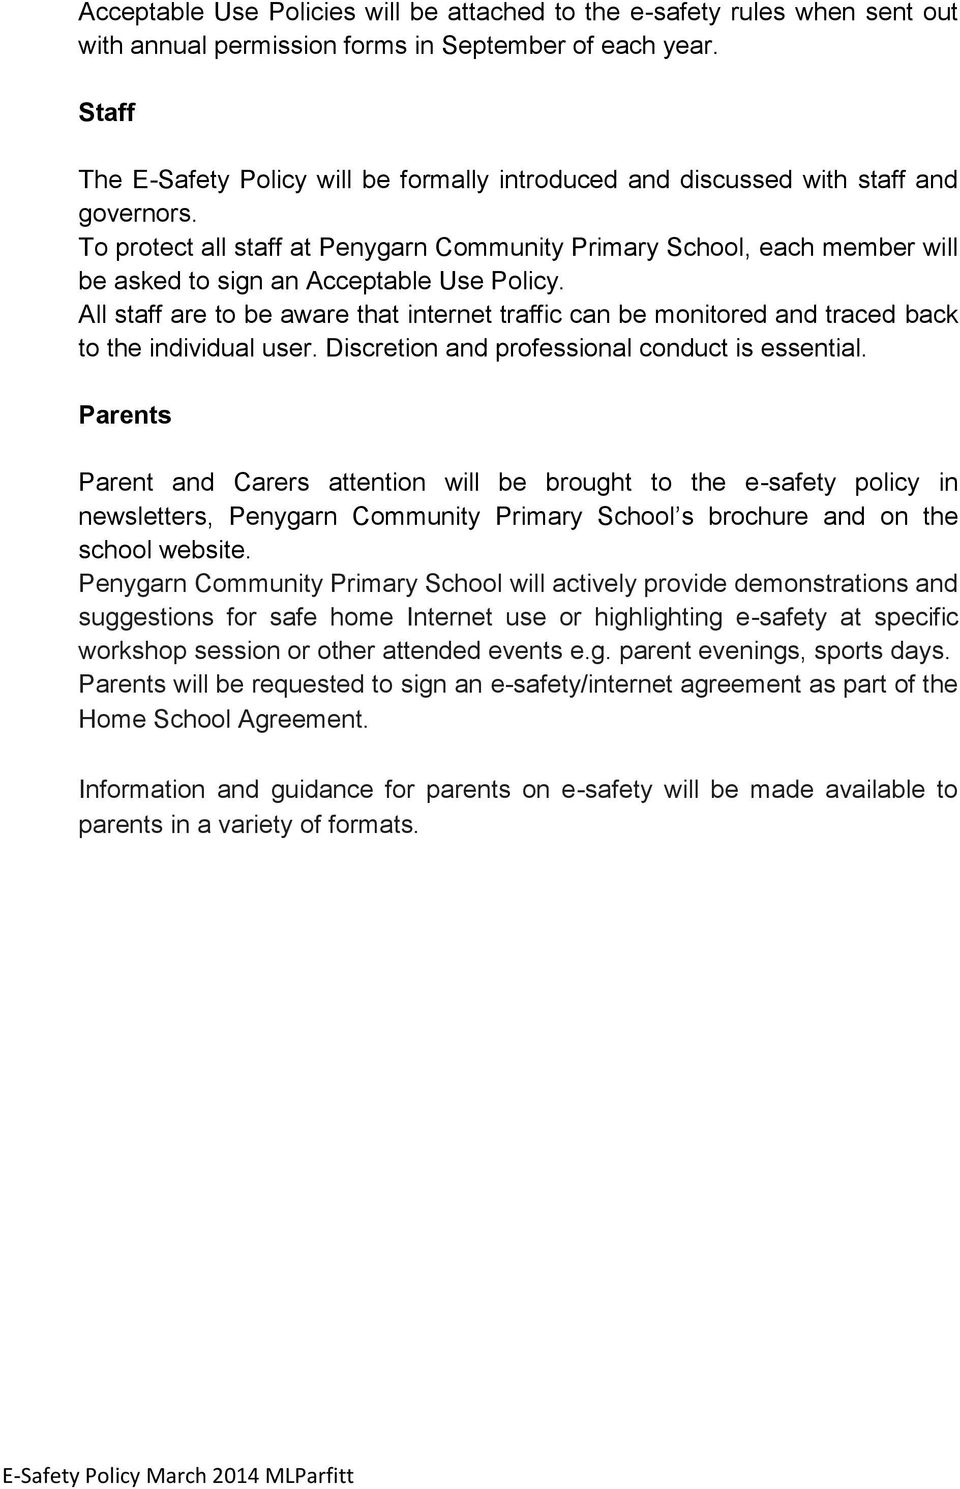 To protect all staff at Penygarn Community Primary School, each member will be asked to sign an Acceptable Use Policy.